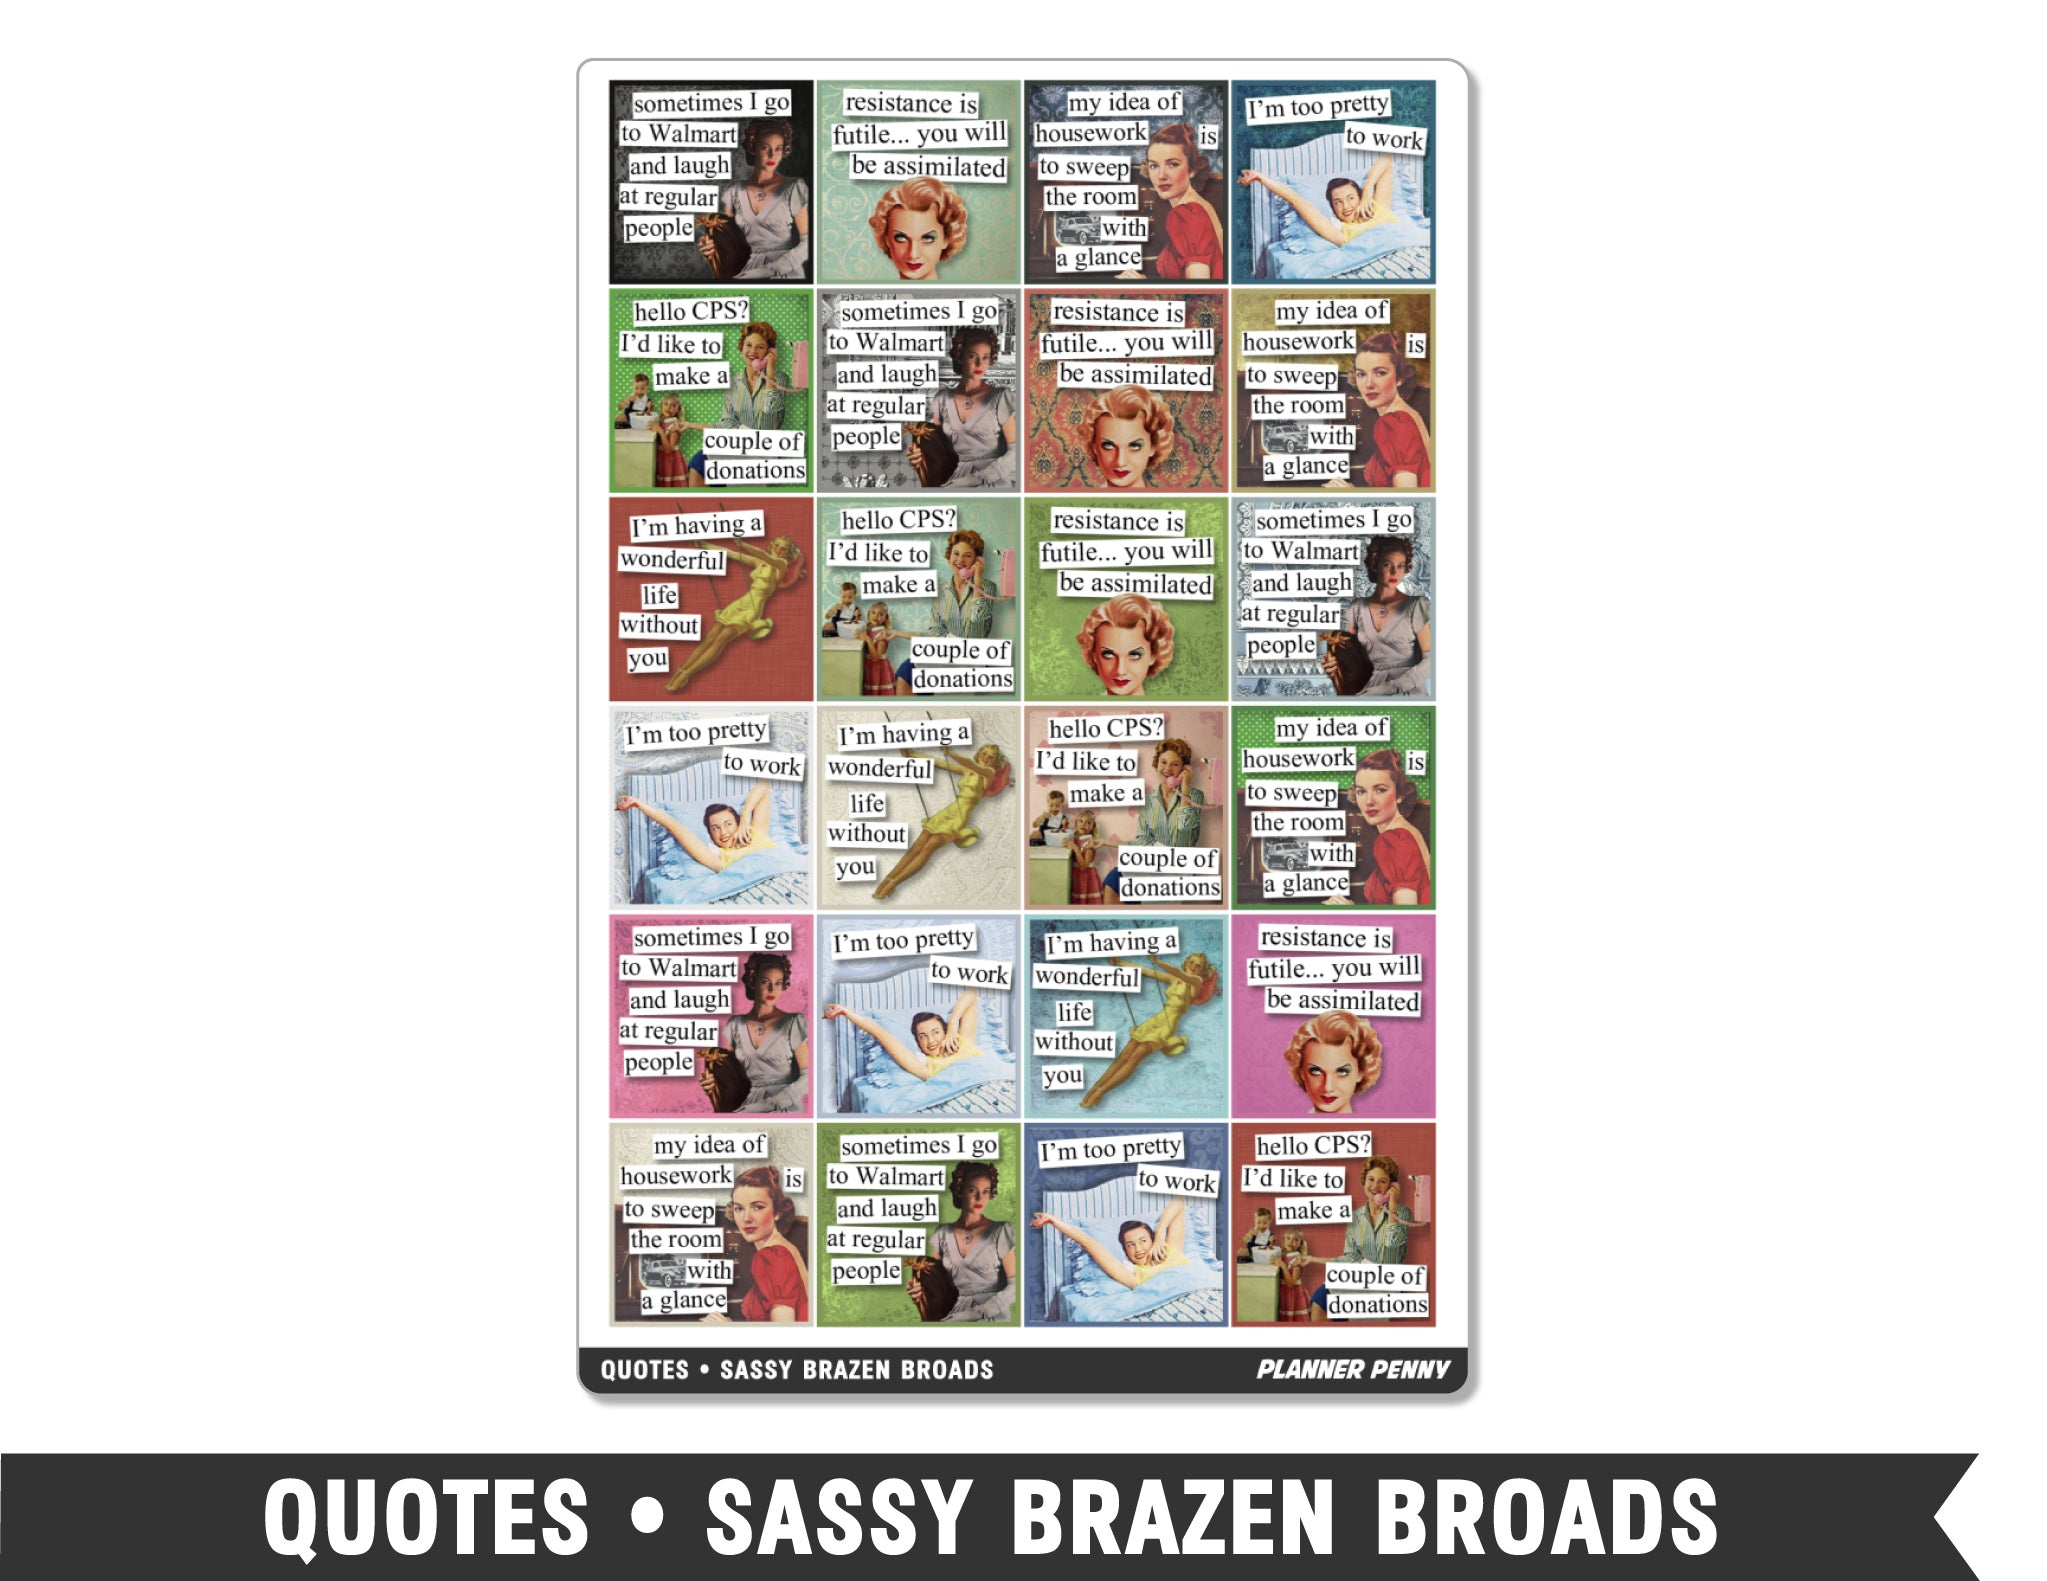 Quotes • Sassy Brazen Broads Planner Stickers - Planner Penny